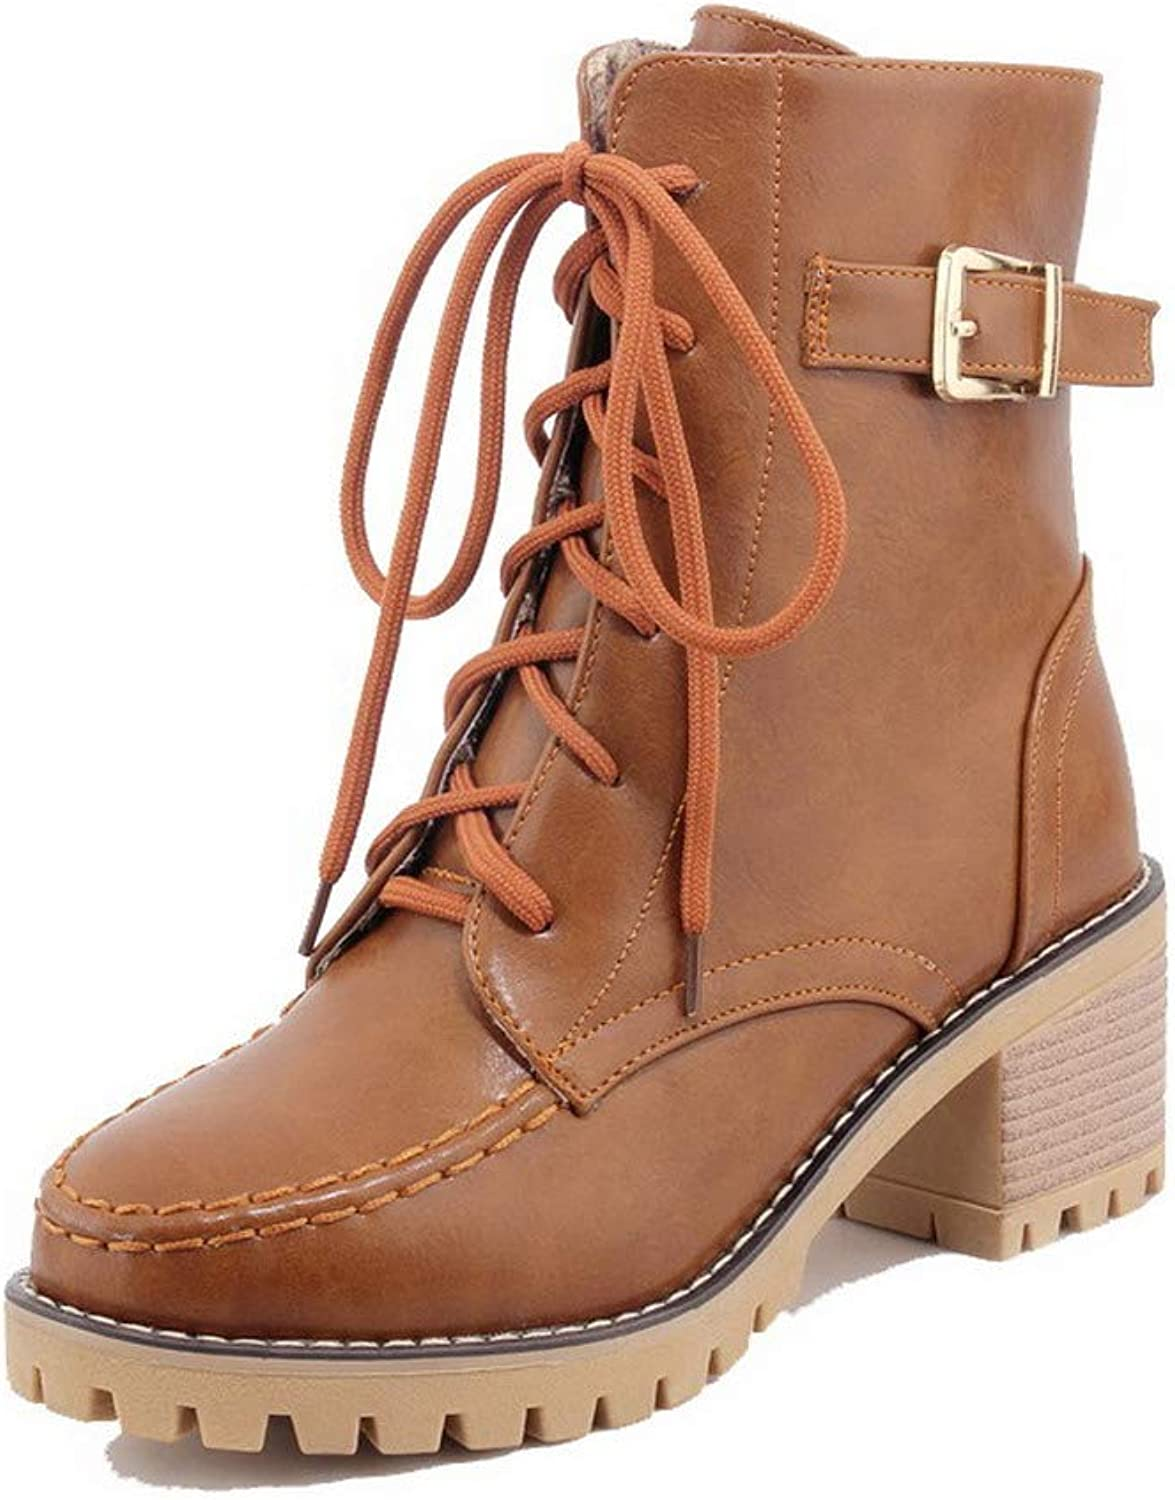 WeenFashion Women's Kitten-Heels Solid Closed-Toe Pu Lace-Up Boots, AMGXX127545